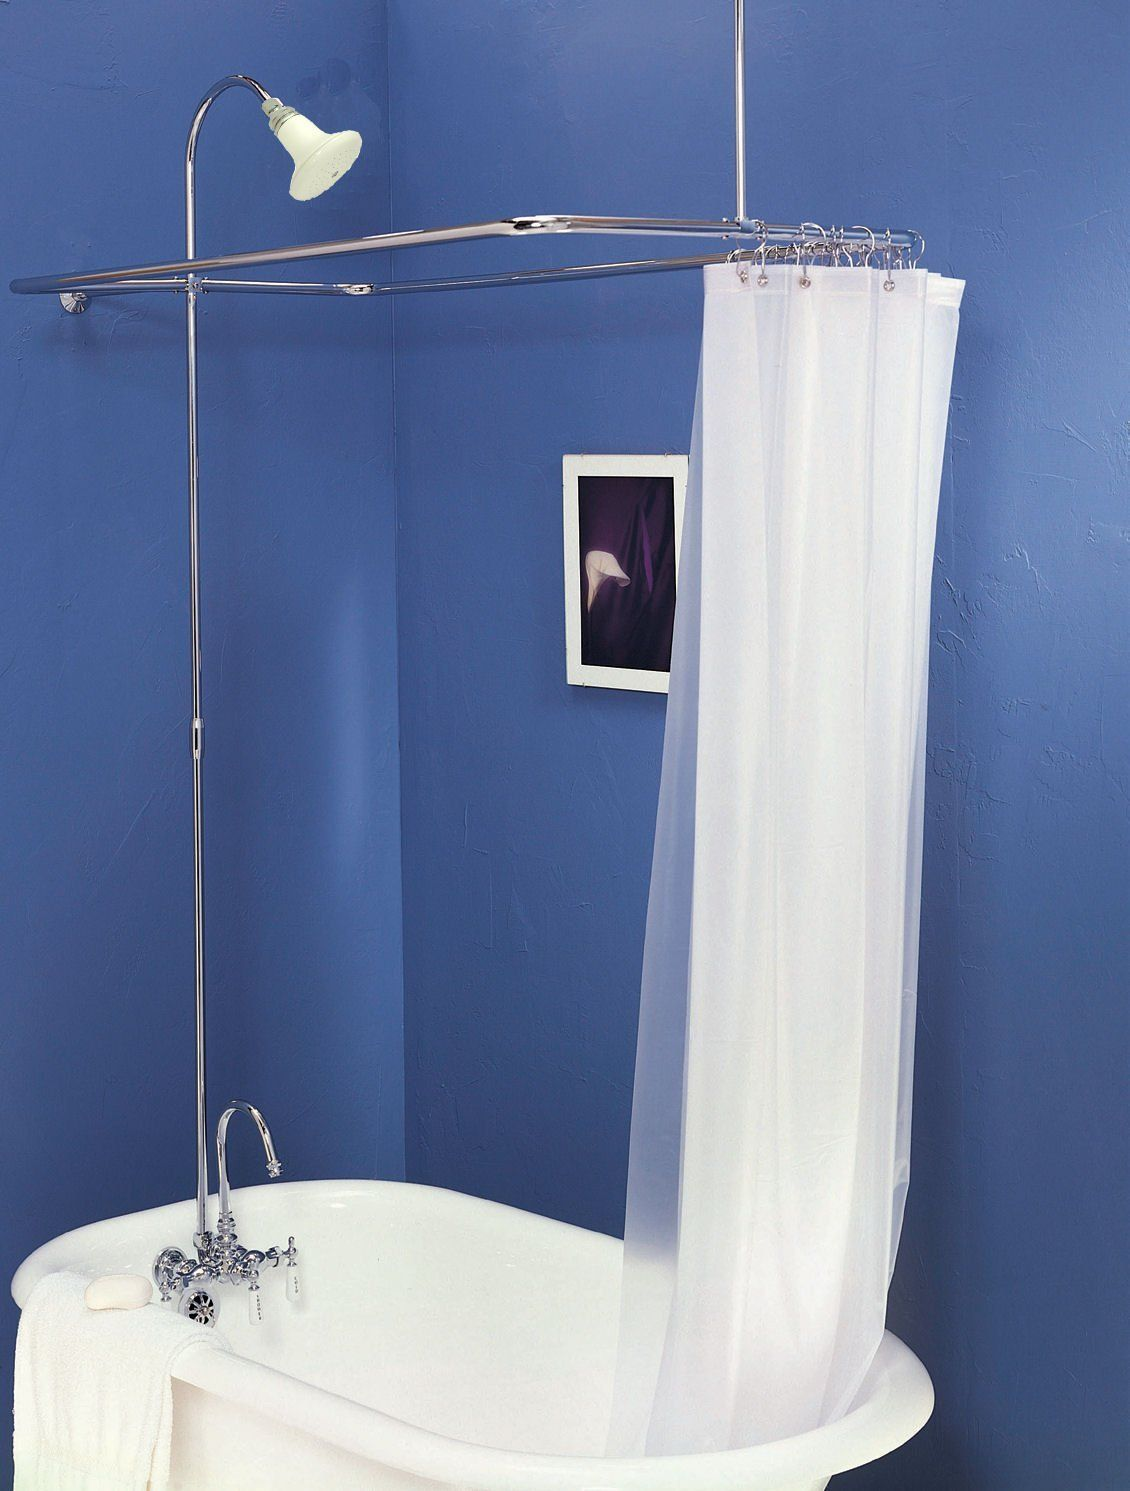 Claw Foot Add On Shower For Clawfoot Tub With Riser Diverter